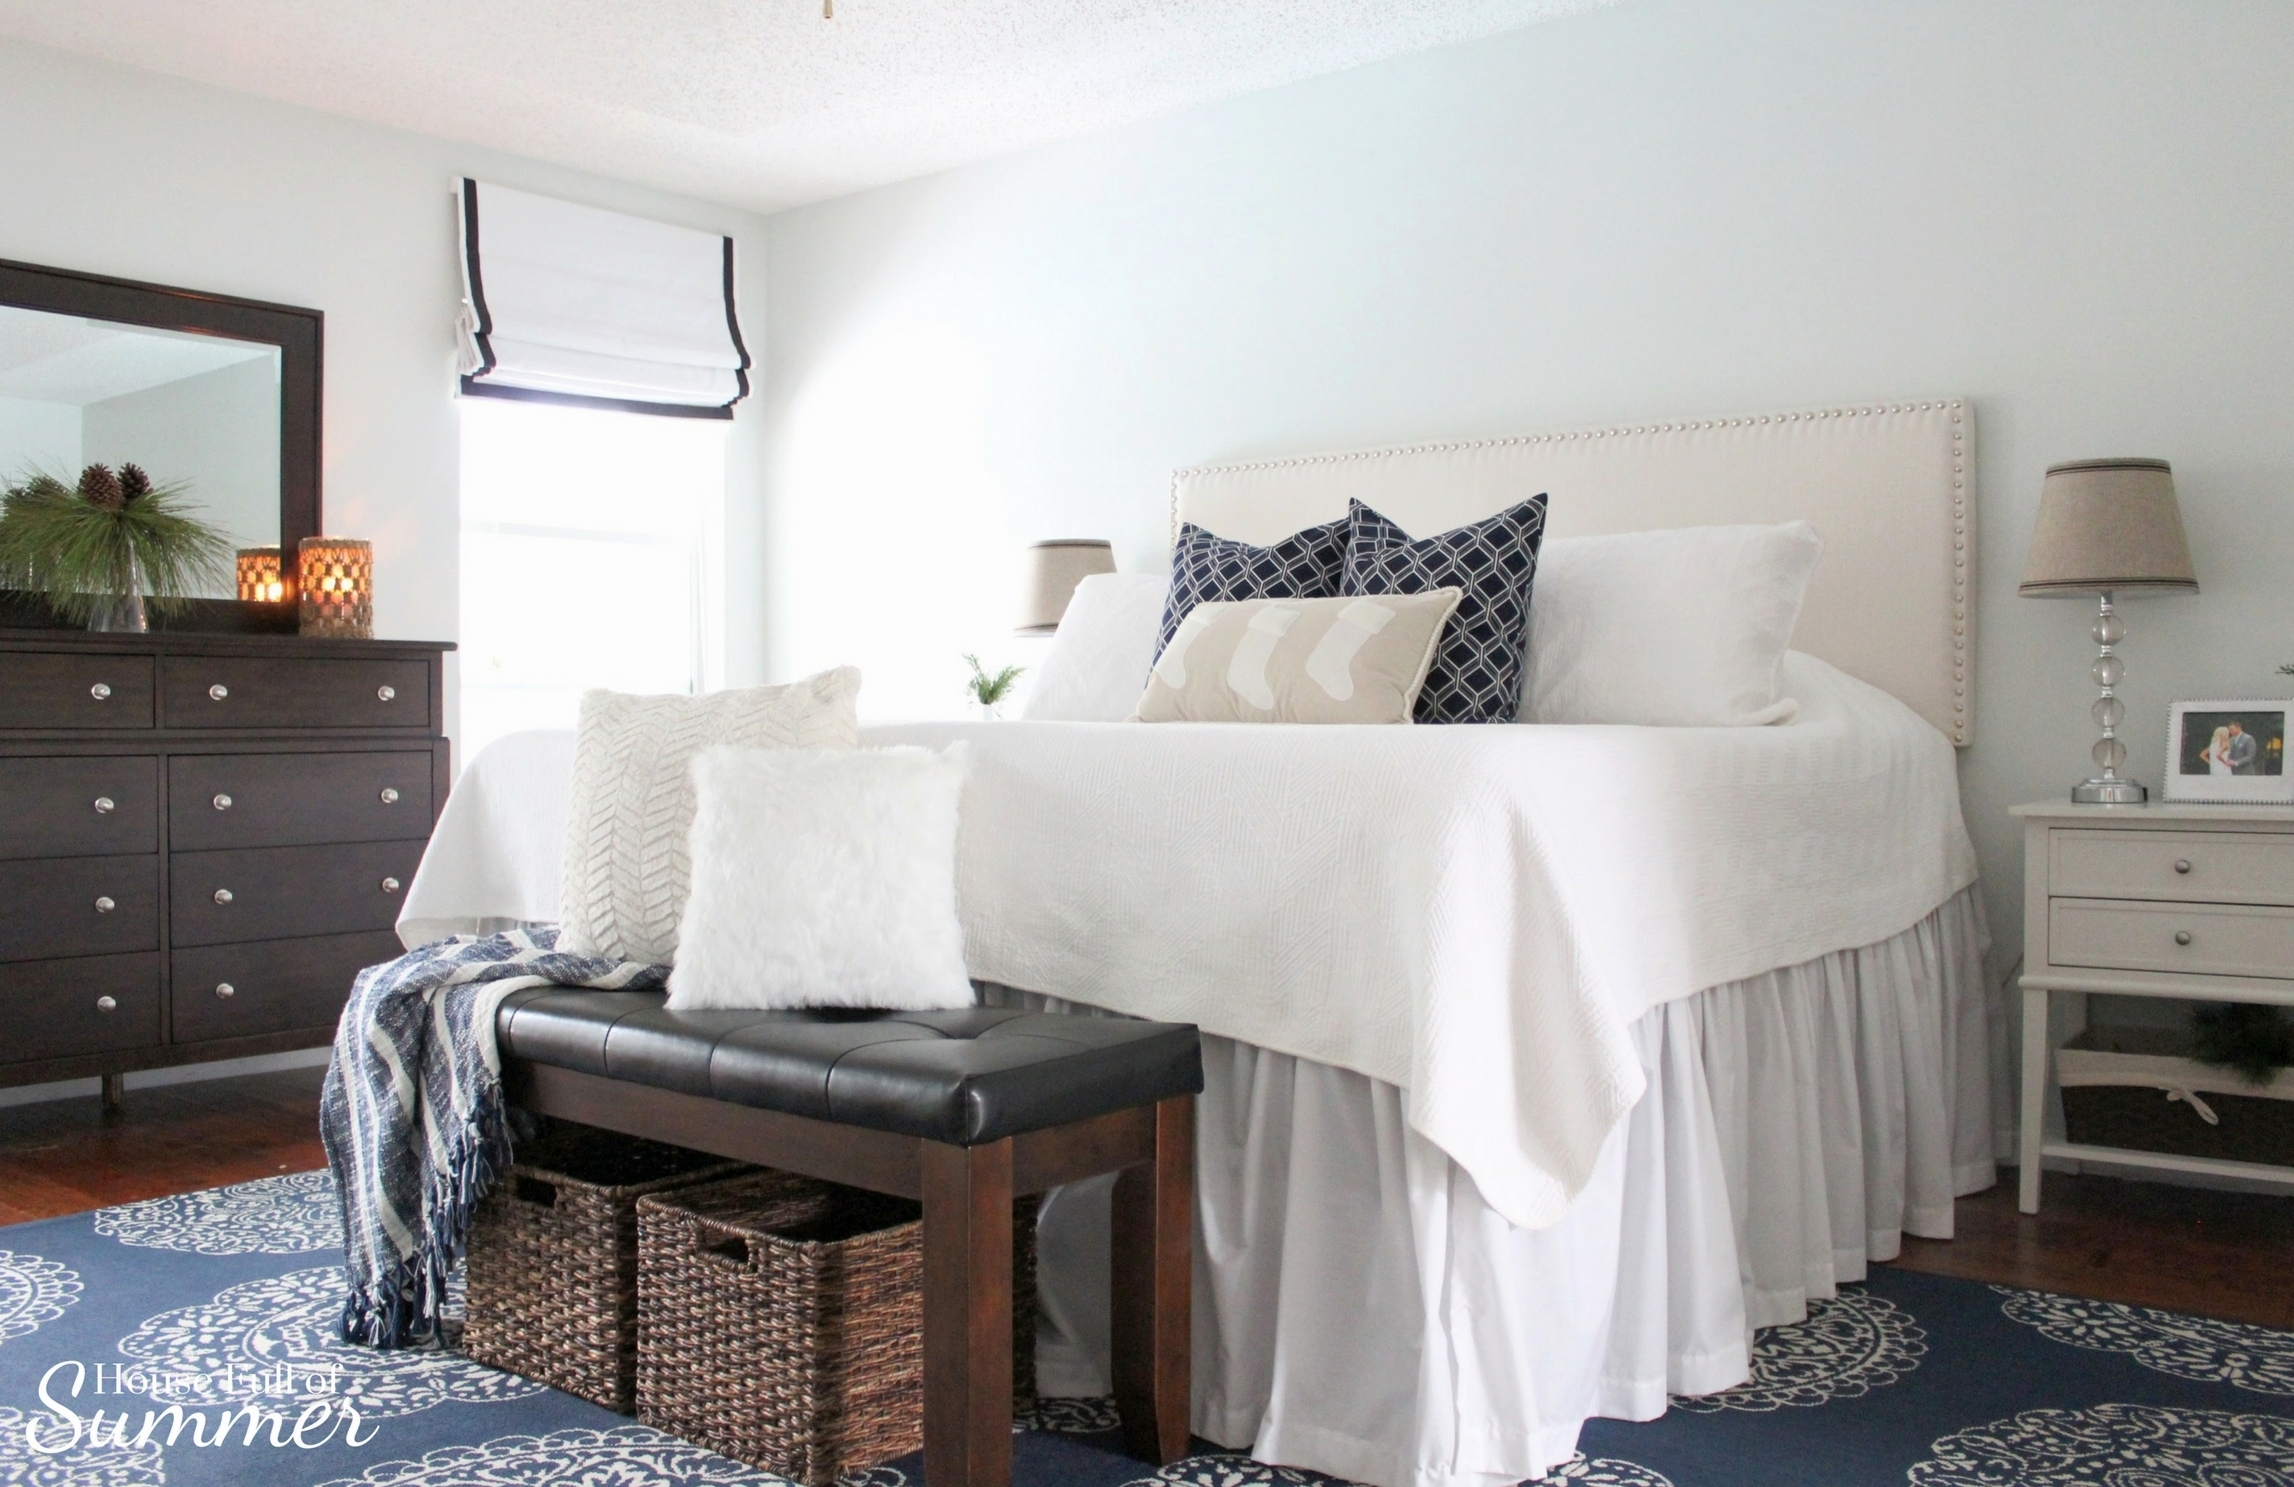 Classy Christmas Home Tour {Part Two} | House Full of Summer blog - Christmas bedding, neutral bedroom decor, navy and white Christmas ideas, Navy and white Christmas bedroom, blue christmas decorations, coastal home, blue and white area rug, tall nightstands, Christmas greenery, roman shades, pottery barn style